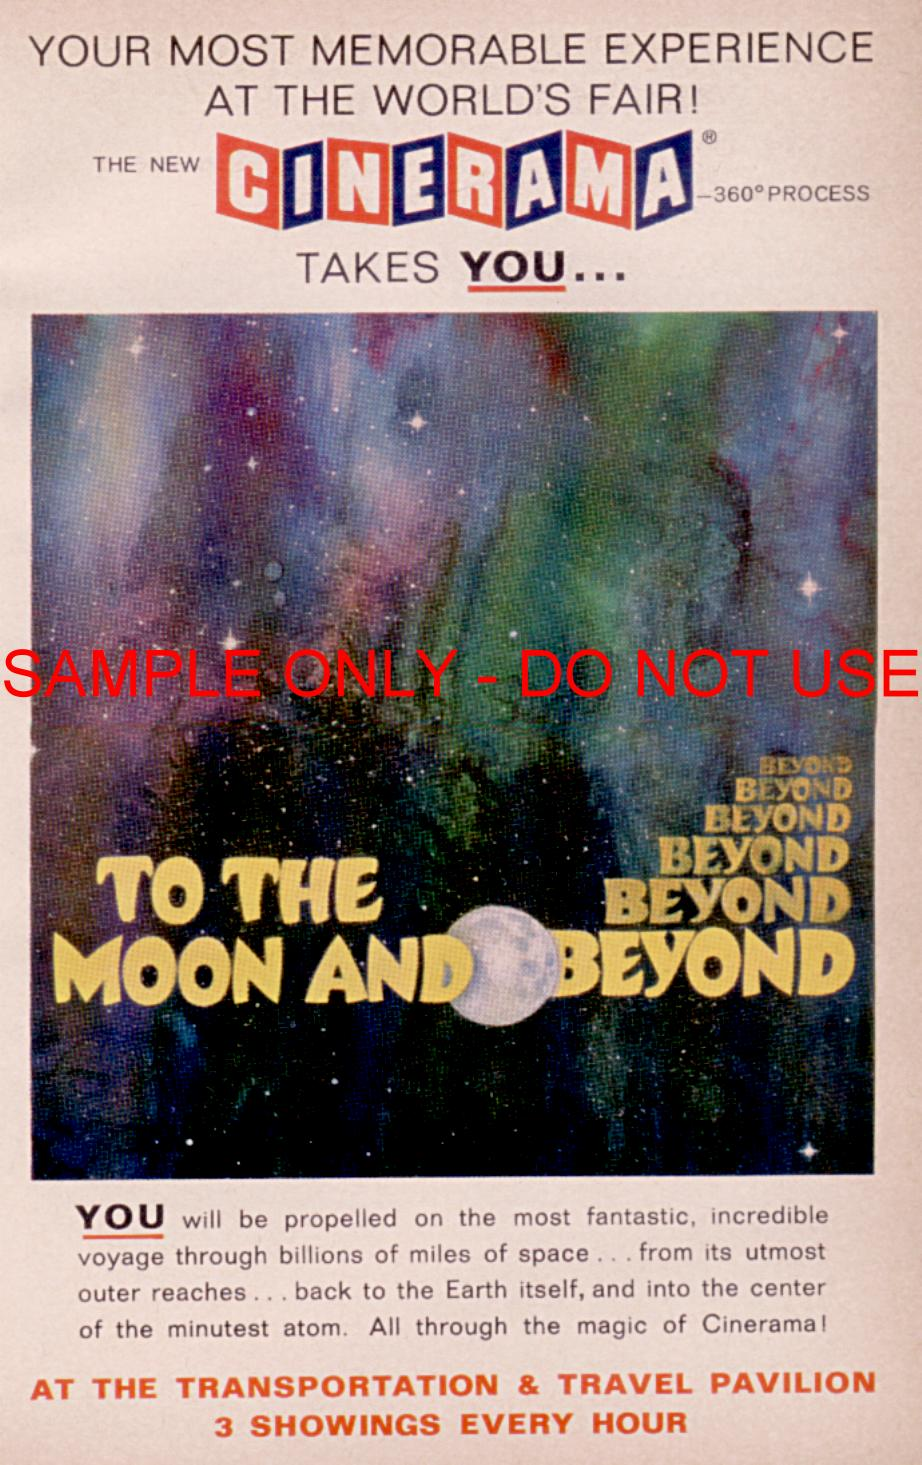 Cinerama To The Moon ad